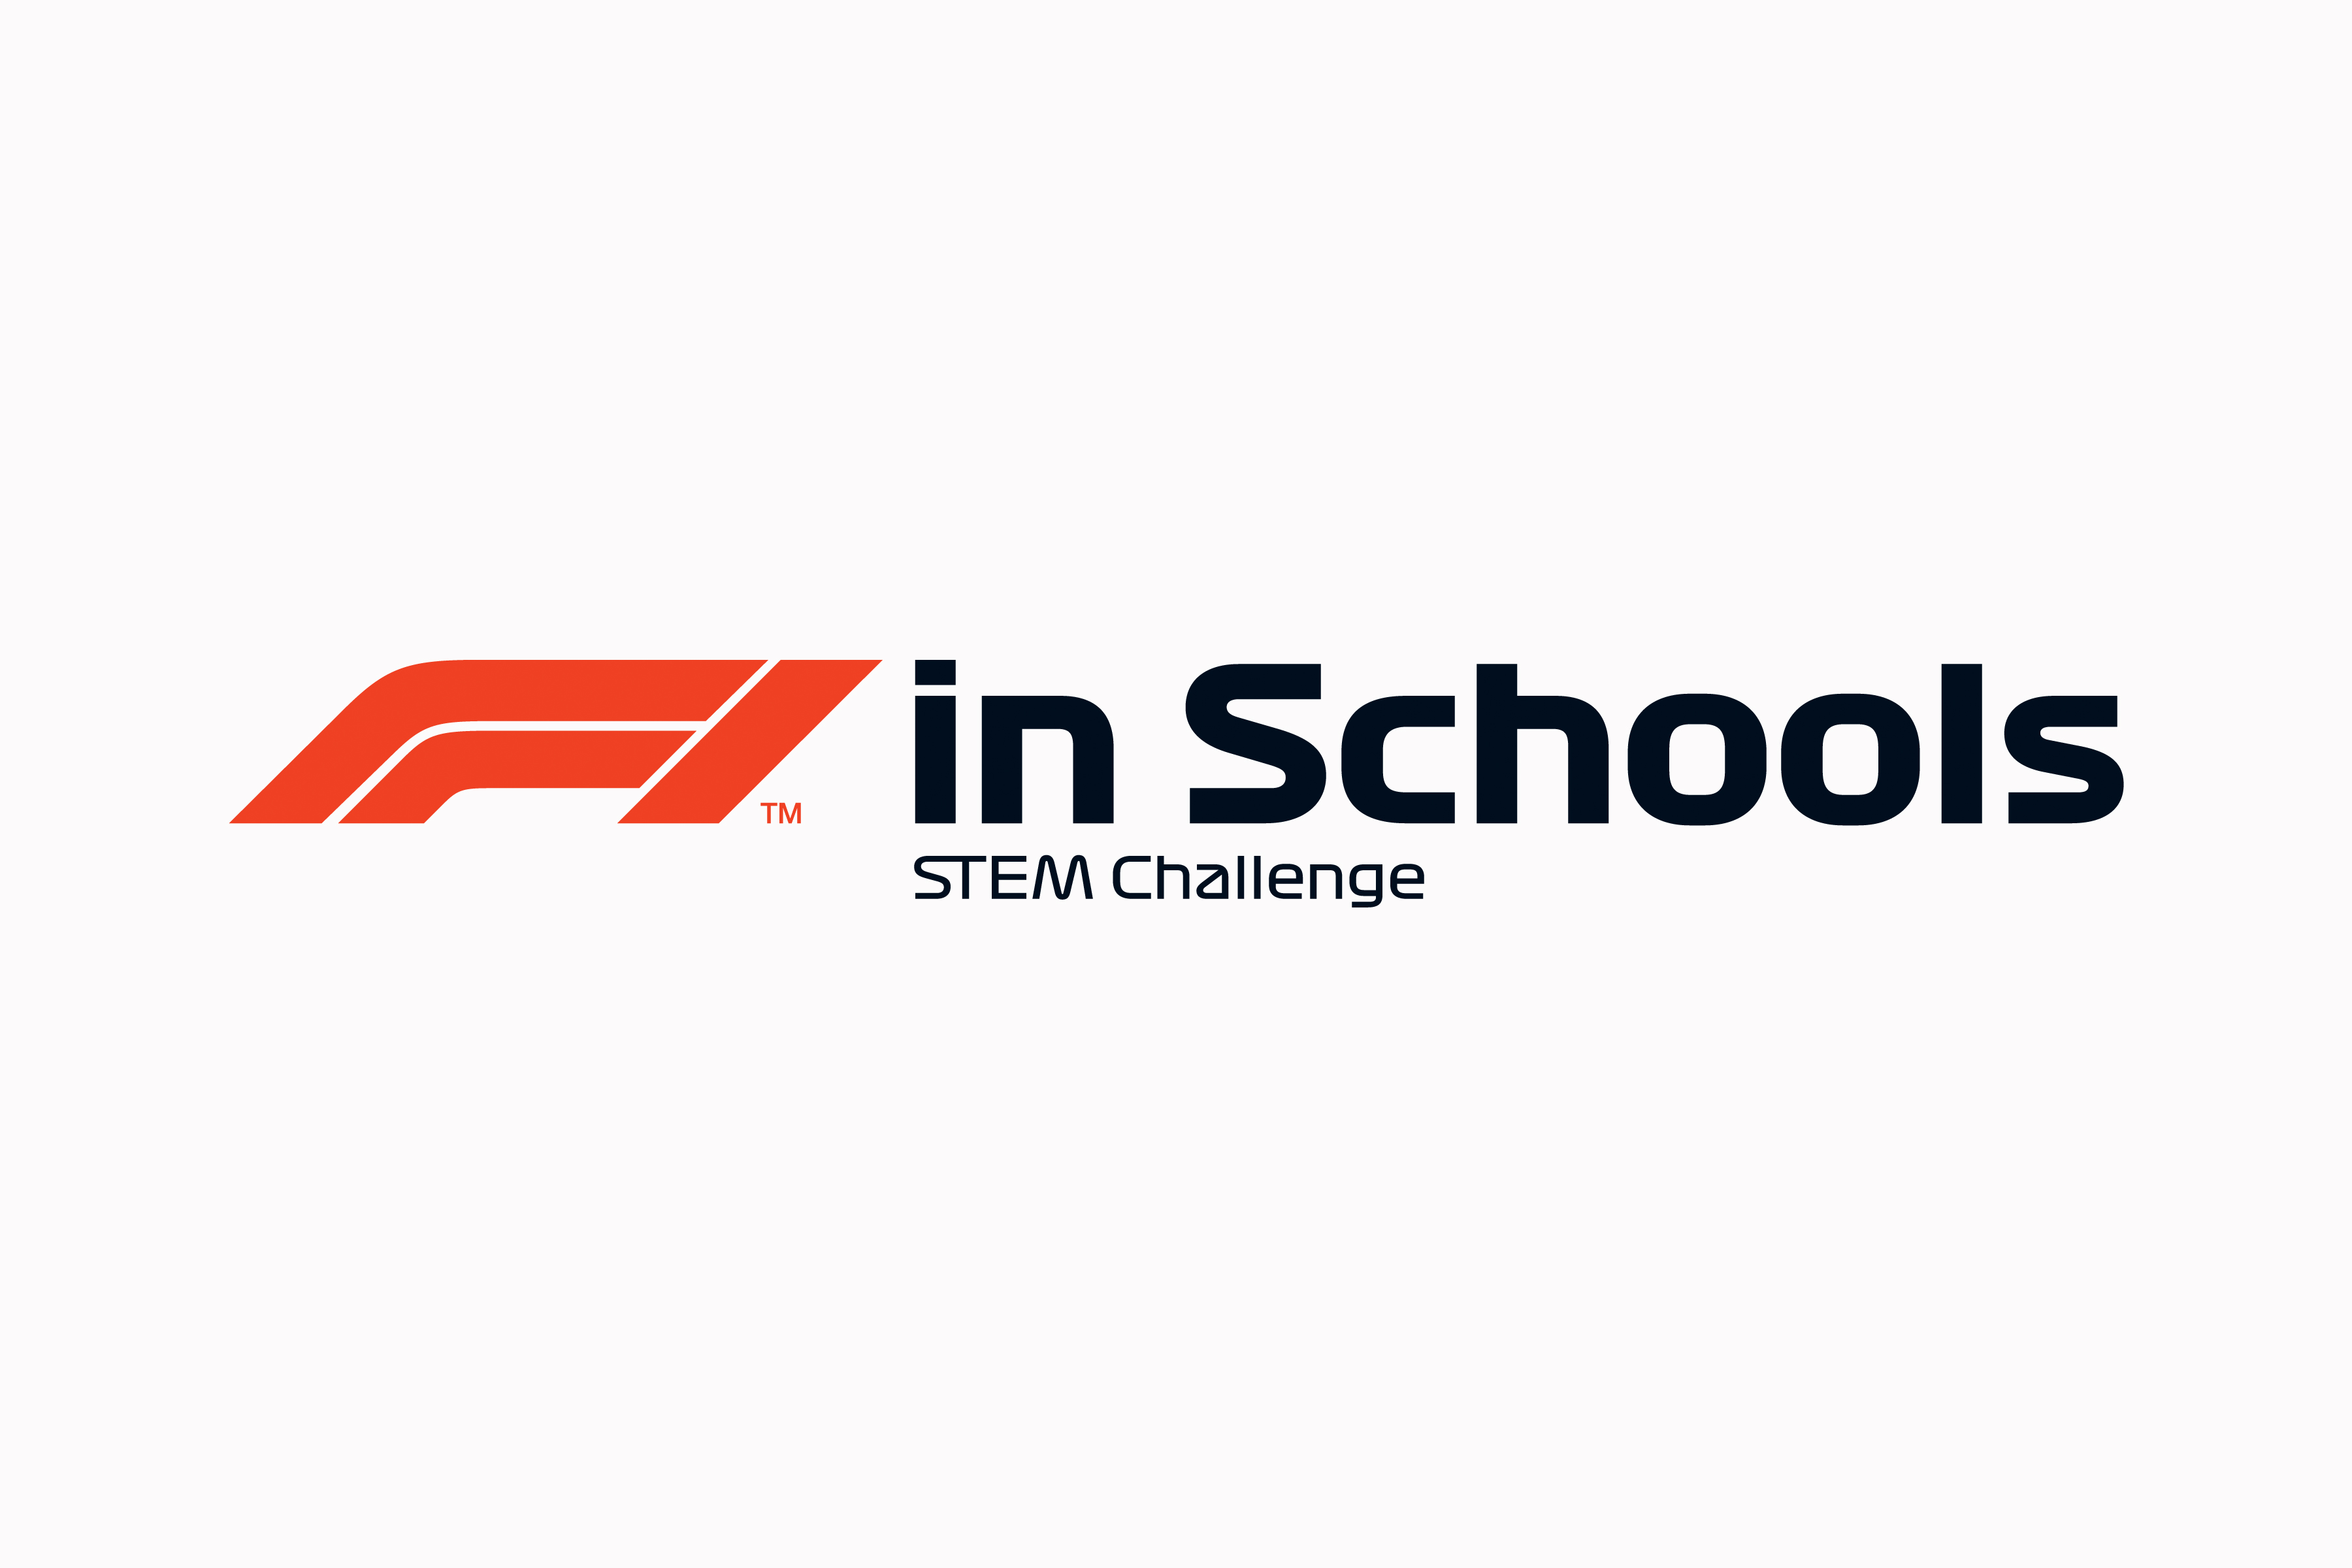 f1 in schools stem challenge reinforces status as official education